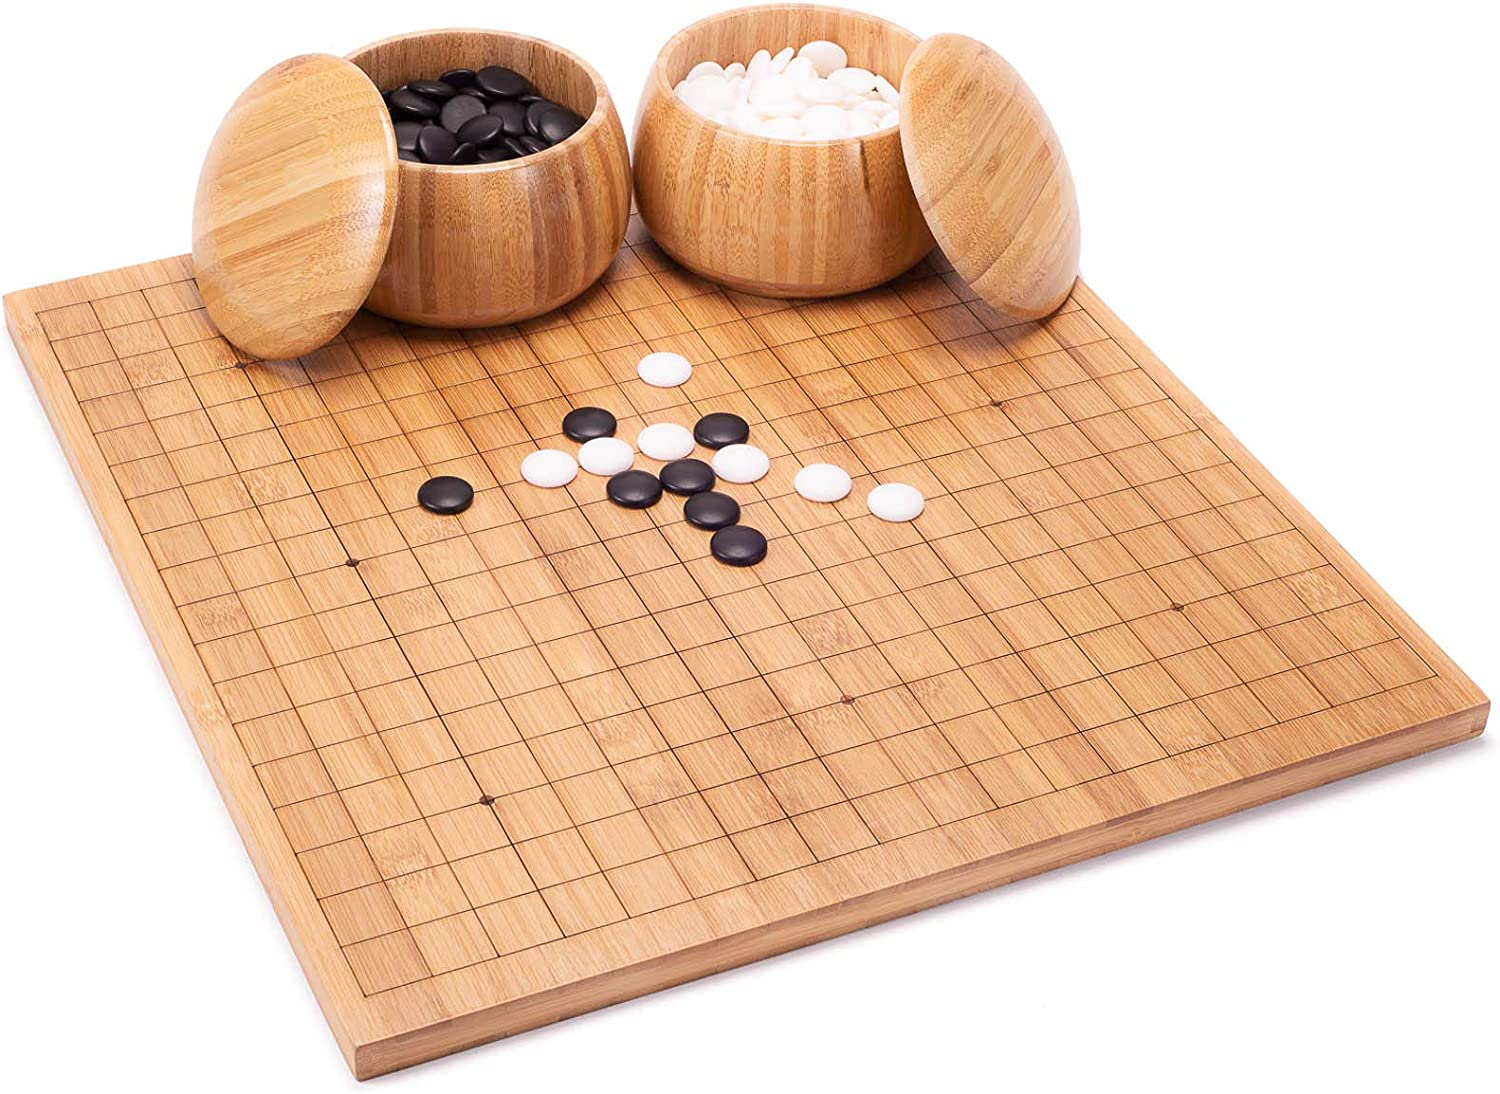 AMEROUS Go Set with Etched 13x13 Board Reversible Super intense SALE 19x19 Bamboo Industry No. 1